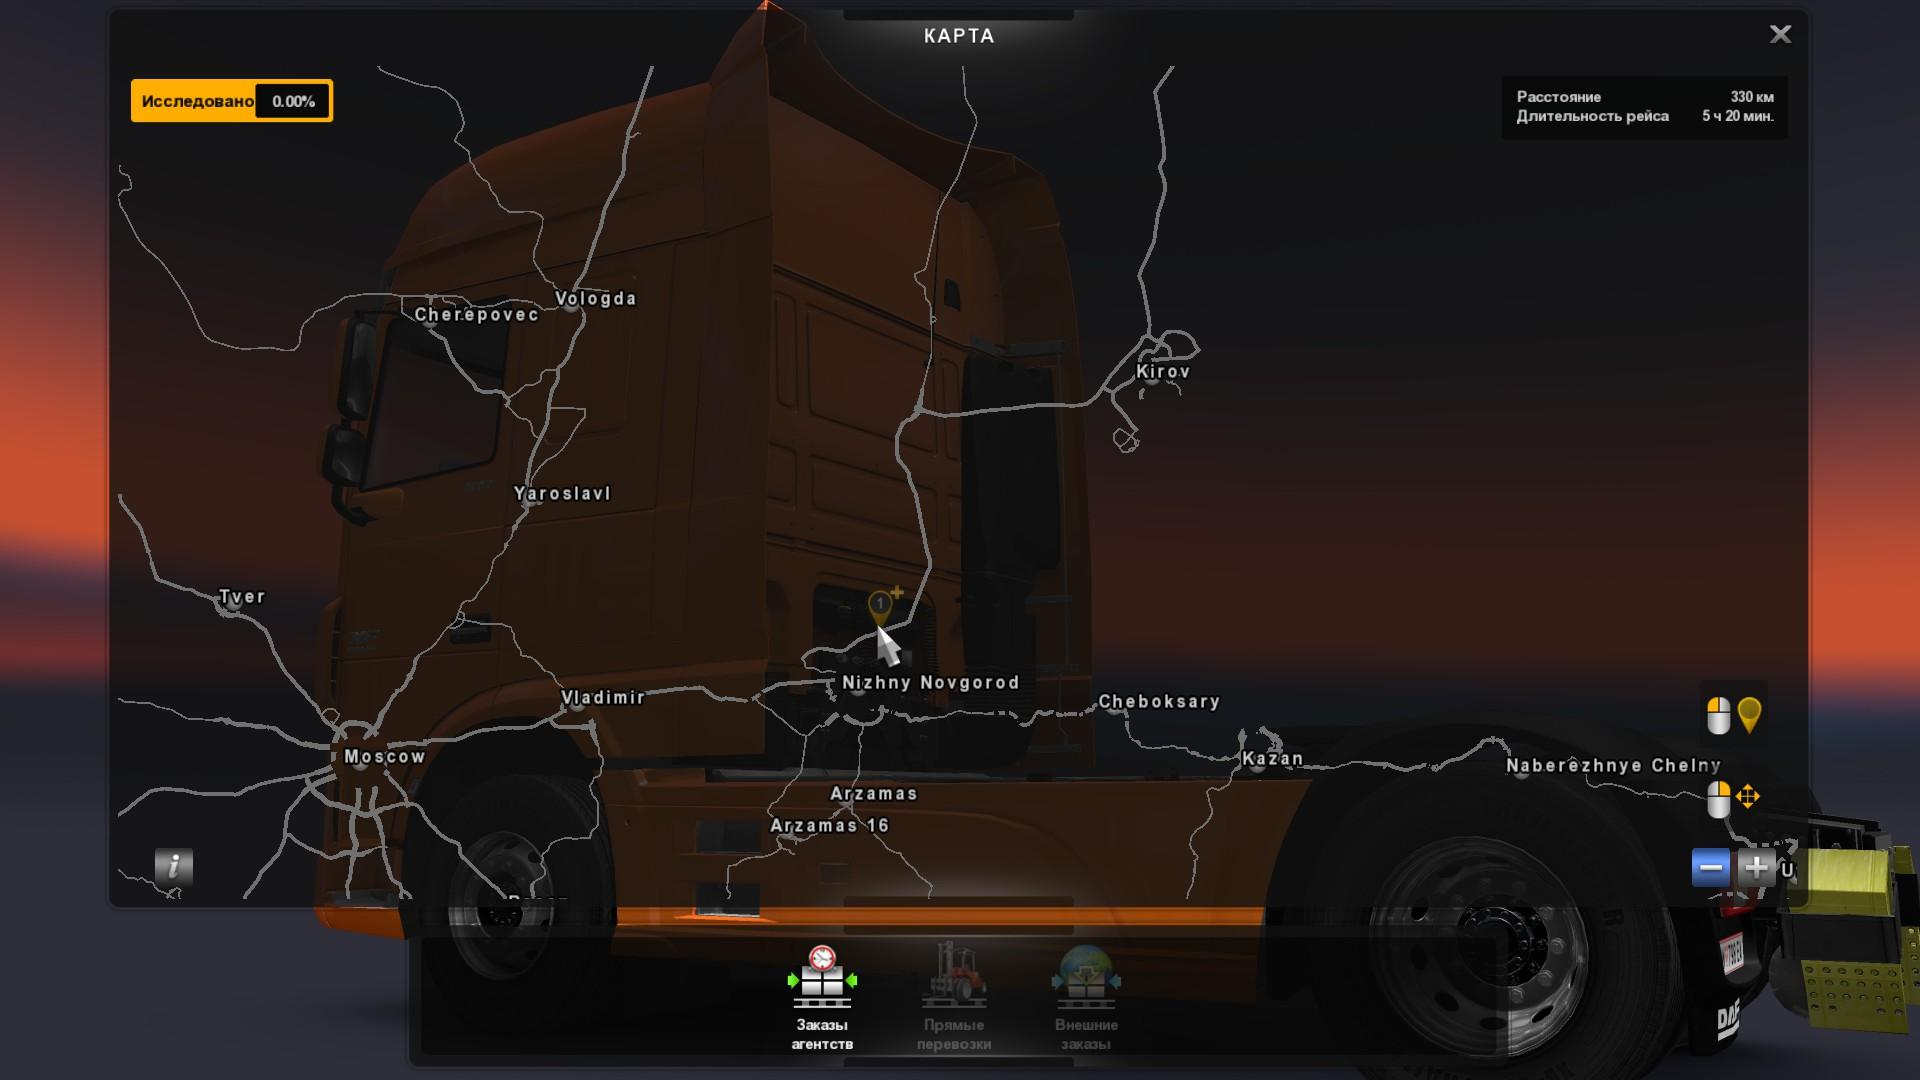 MARIO MAP (EUROPE, AMERICA, RUSSIA) 1.23 For ETS2 -Euro Truck ... on markovo russia map, bashkiria russia map, yaroslavl russia map, vladivostok map, grozny russia map, ufa russia map, novgorod russia map, yurga russia map, moscow map, elista russia map, warsaw russia map, crimea russia map, tatarstan russia map, irkutsk map, tula russia map, samara russia map, serpukhov russia map, astrakhan russia map, tynda russia map, volsk russia map,